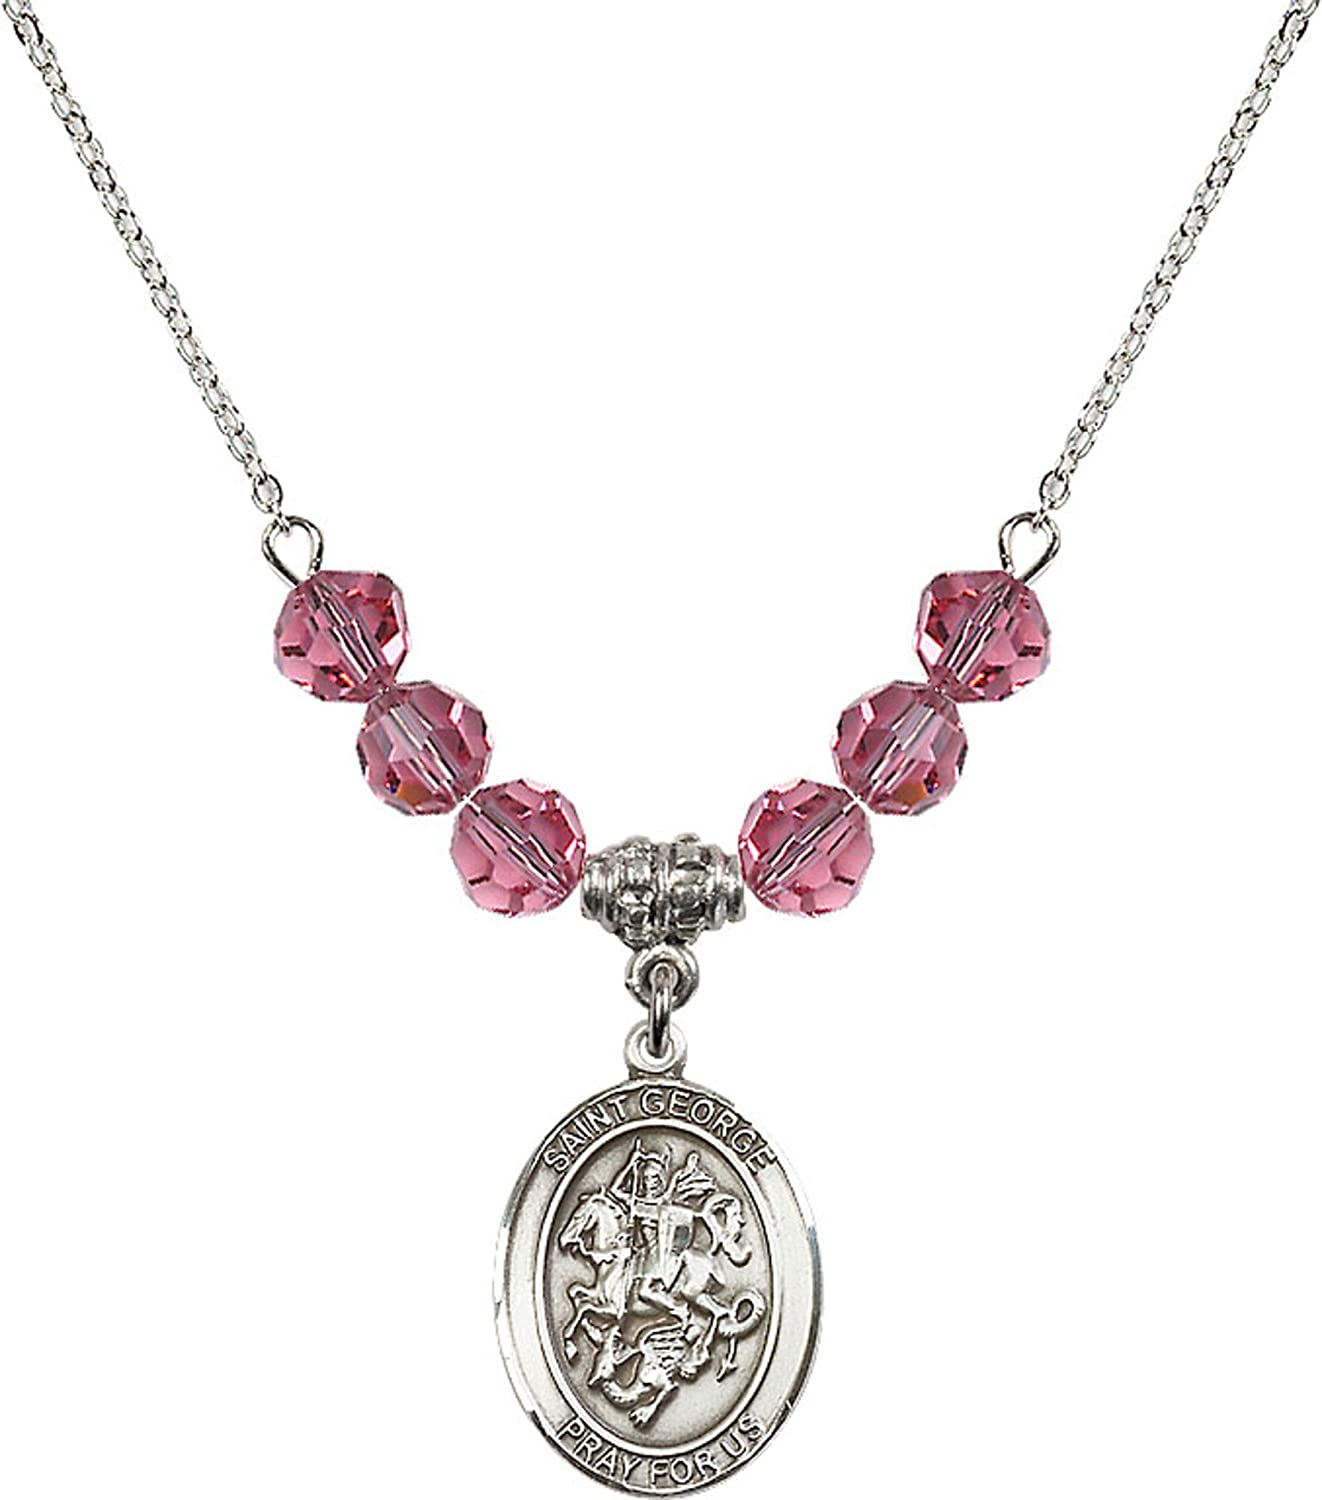 Bonyak Jewelry 18 Inch Rhodium Plated Necklace w// 6mm Rose Pink October Birth Month Stone Beads and Saint George Charm